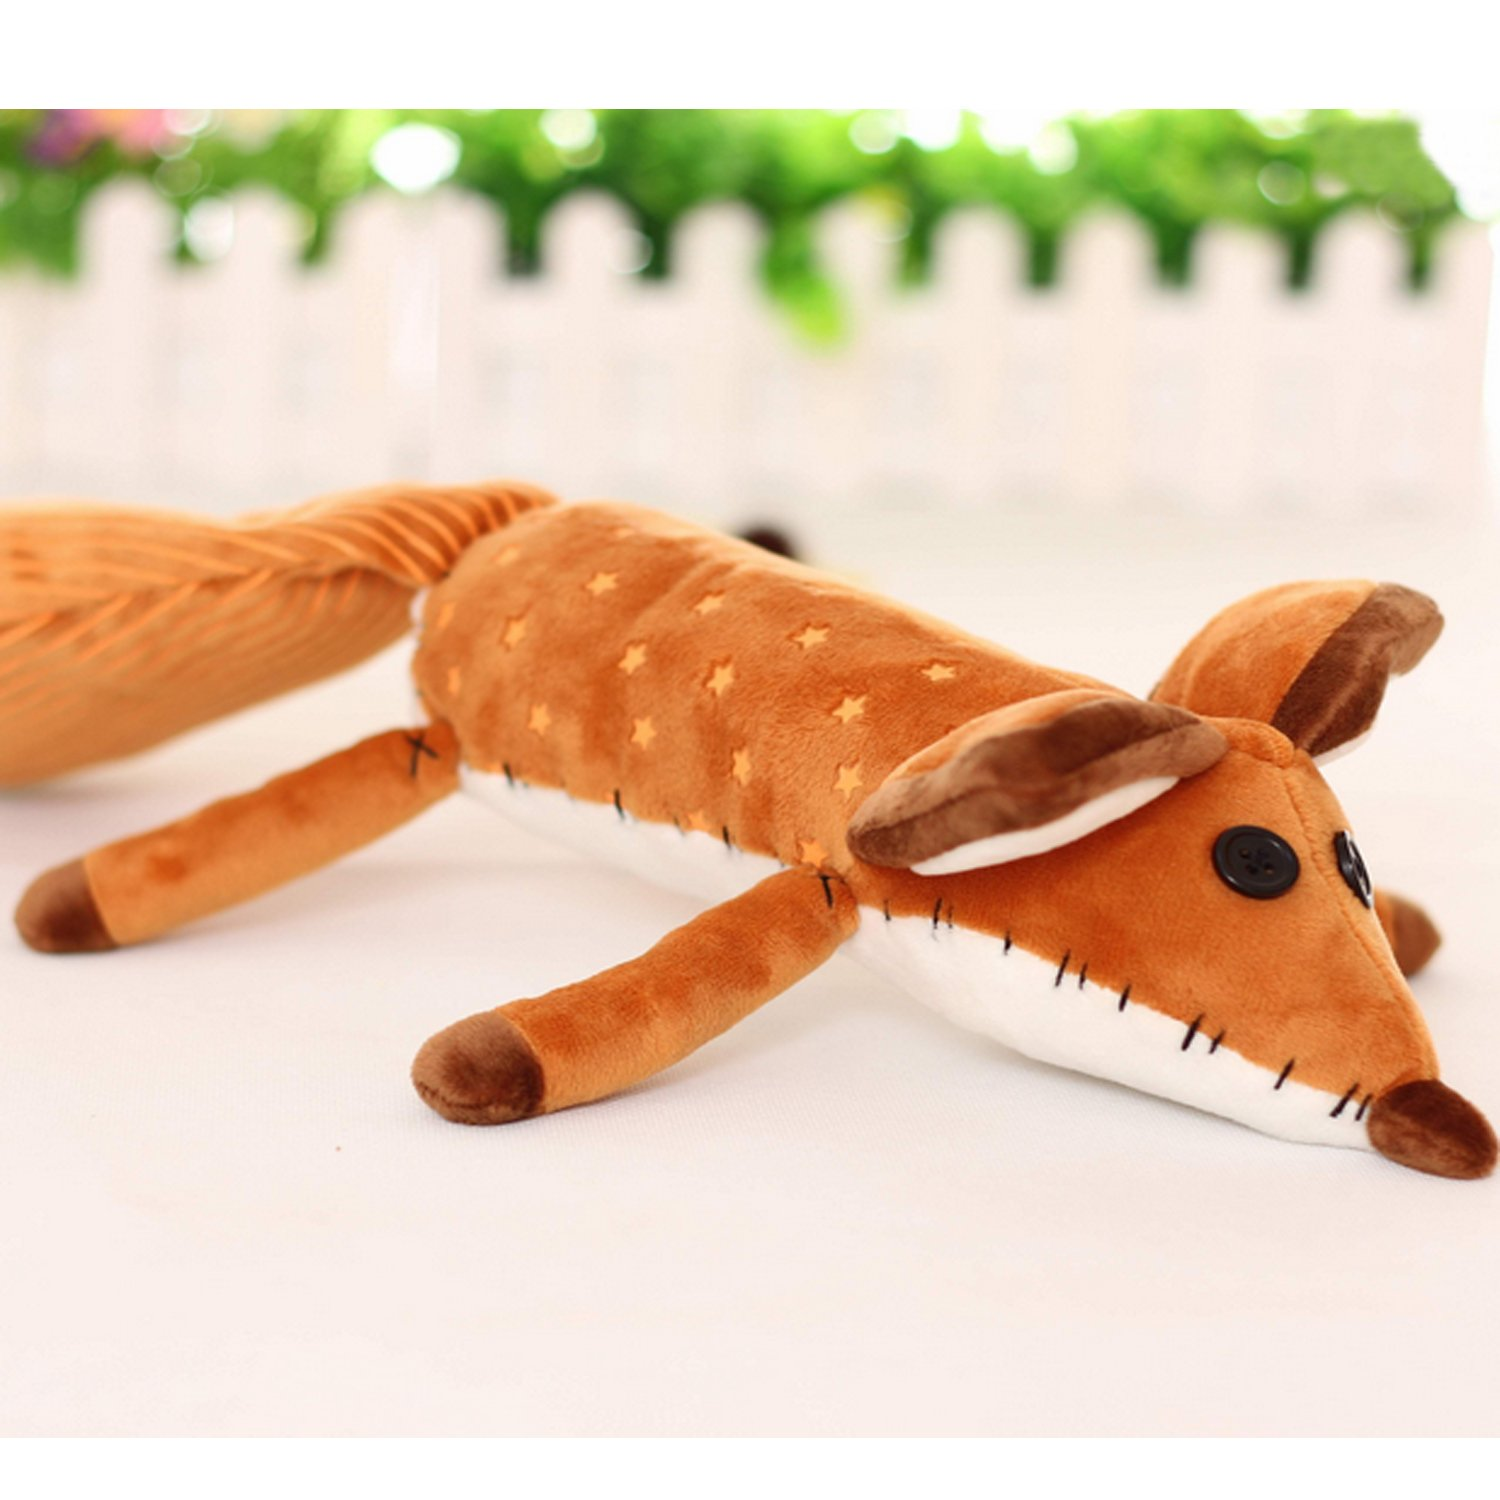 The Little Prince Le Petit Prince Stuffed Fox Plush Education Toys for Kids Birthday/Xmas Gift 20 Inches ALLFORU